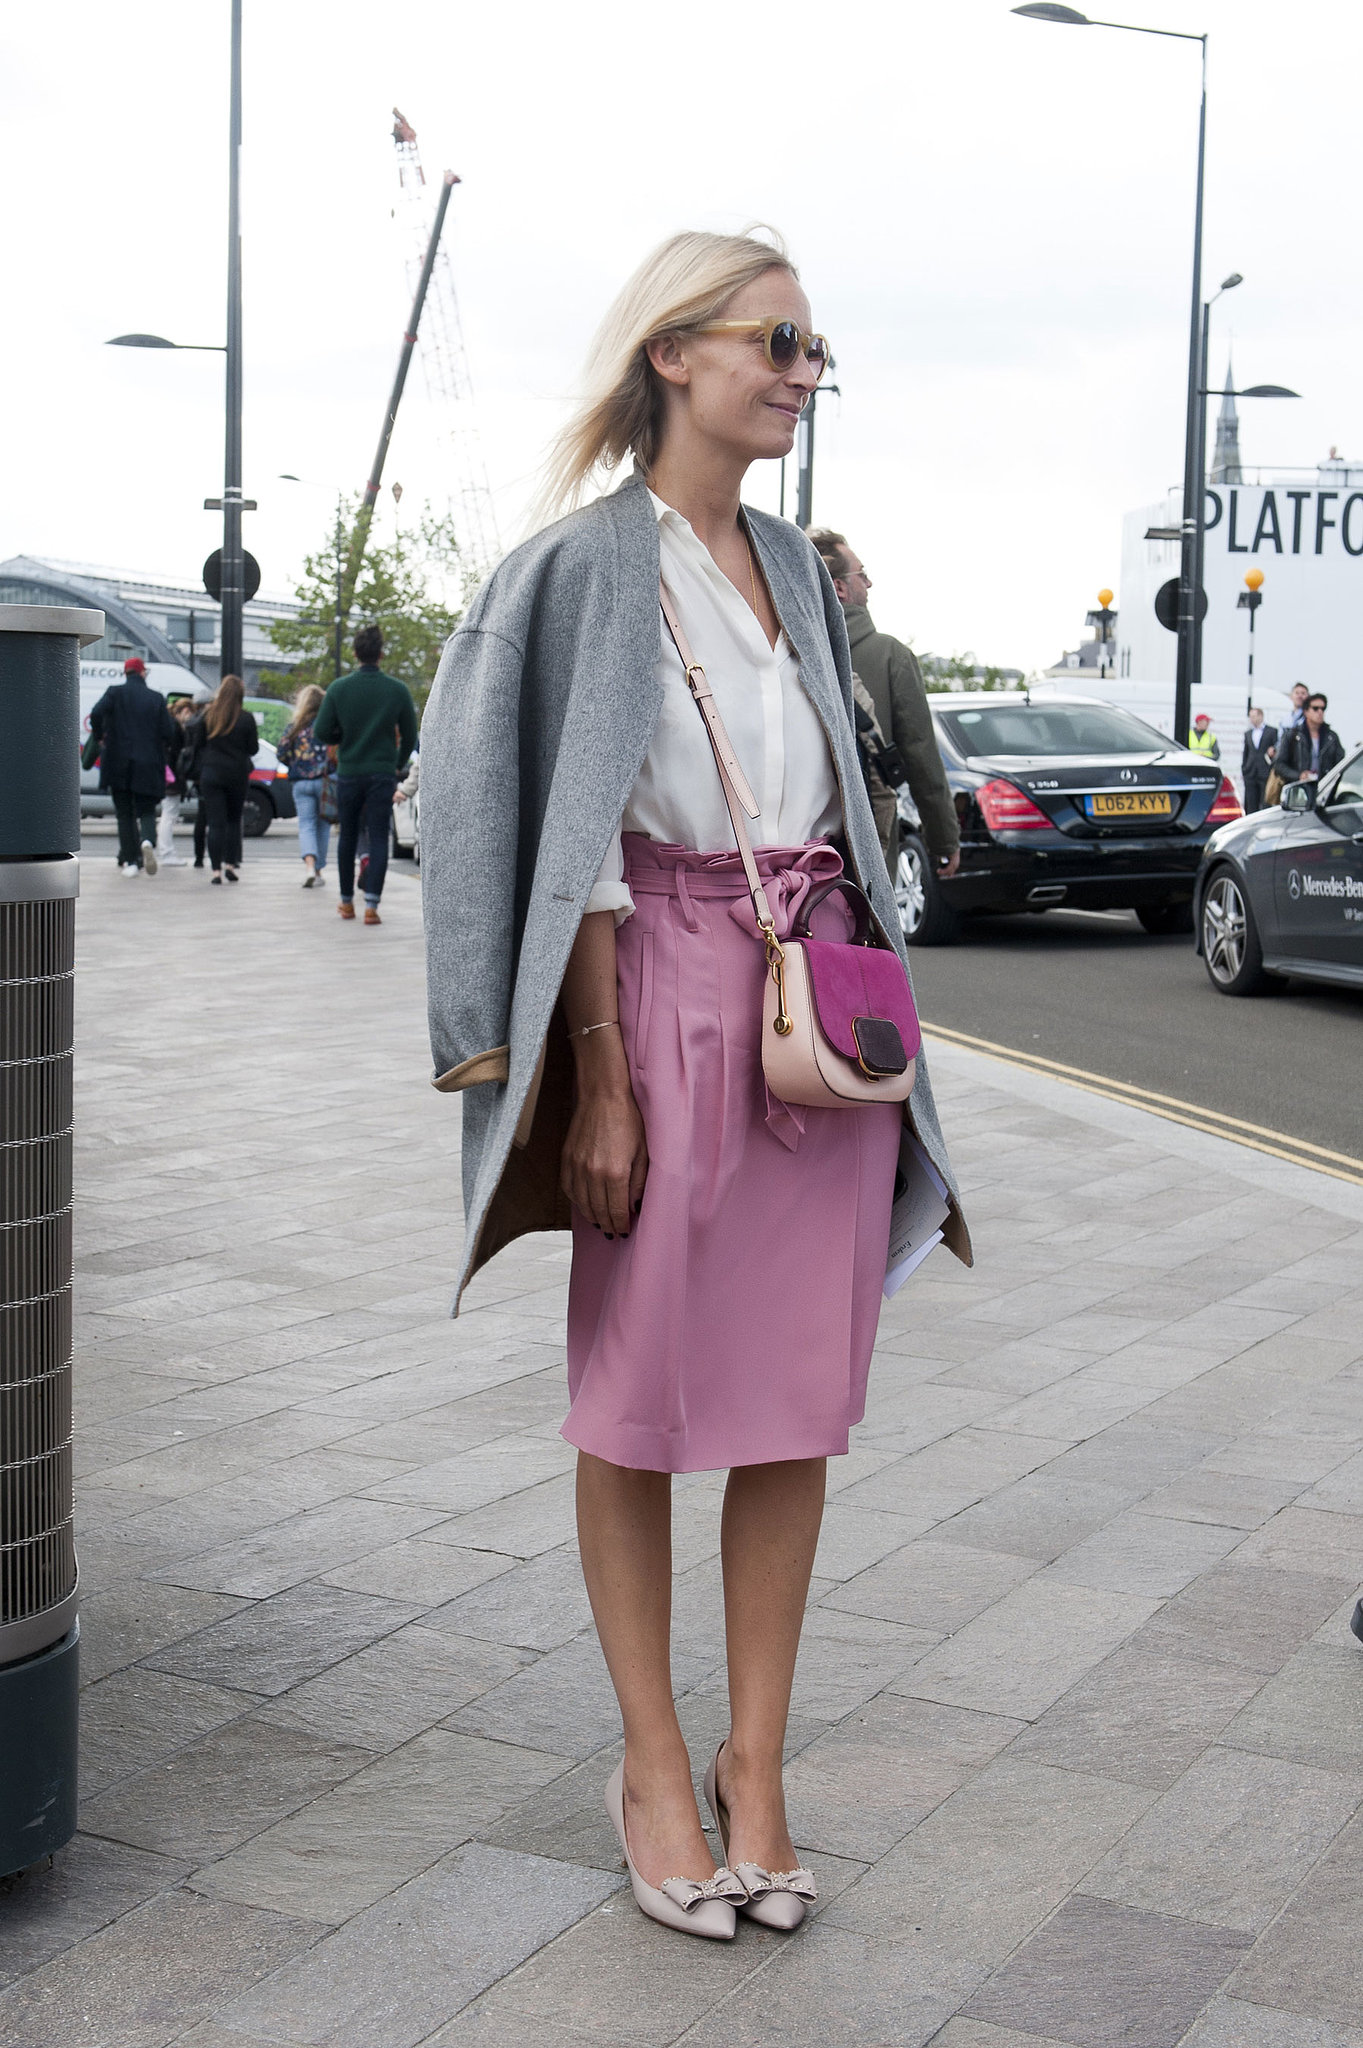 Not too girlie, but with bows on her heels and pink on her skirt, this look is completely lovely.